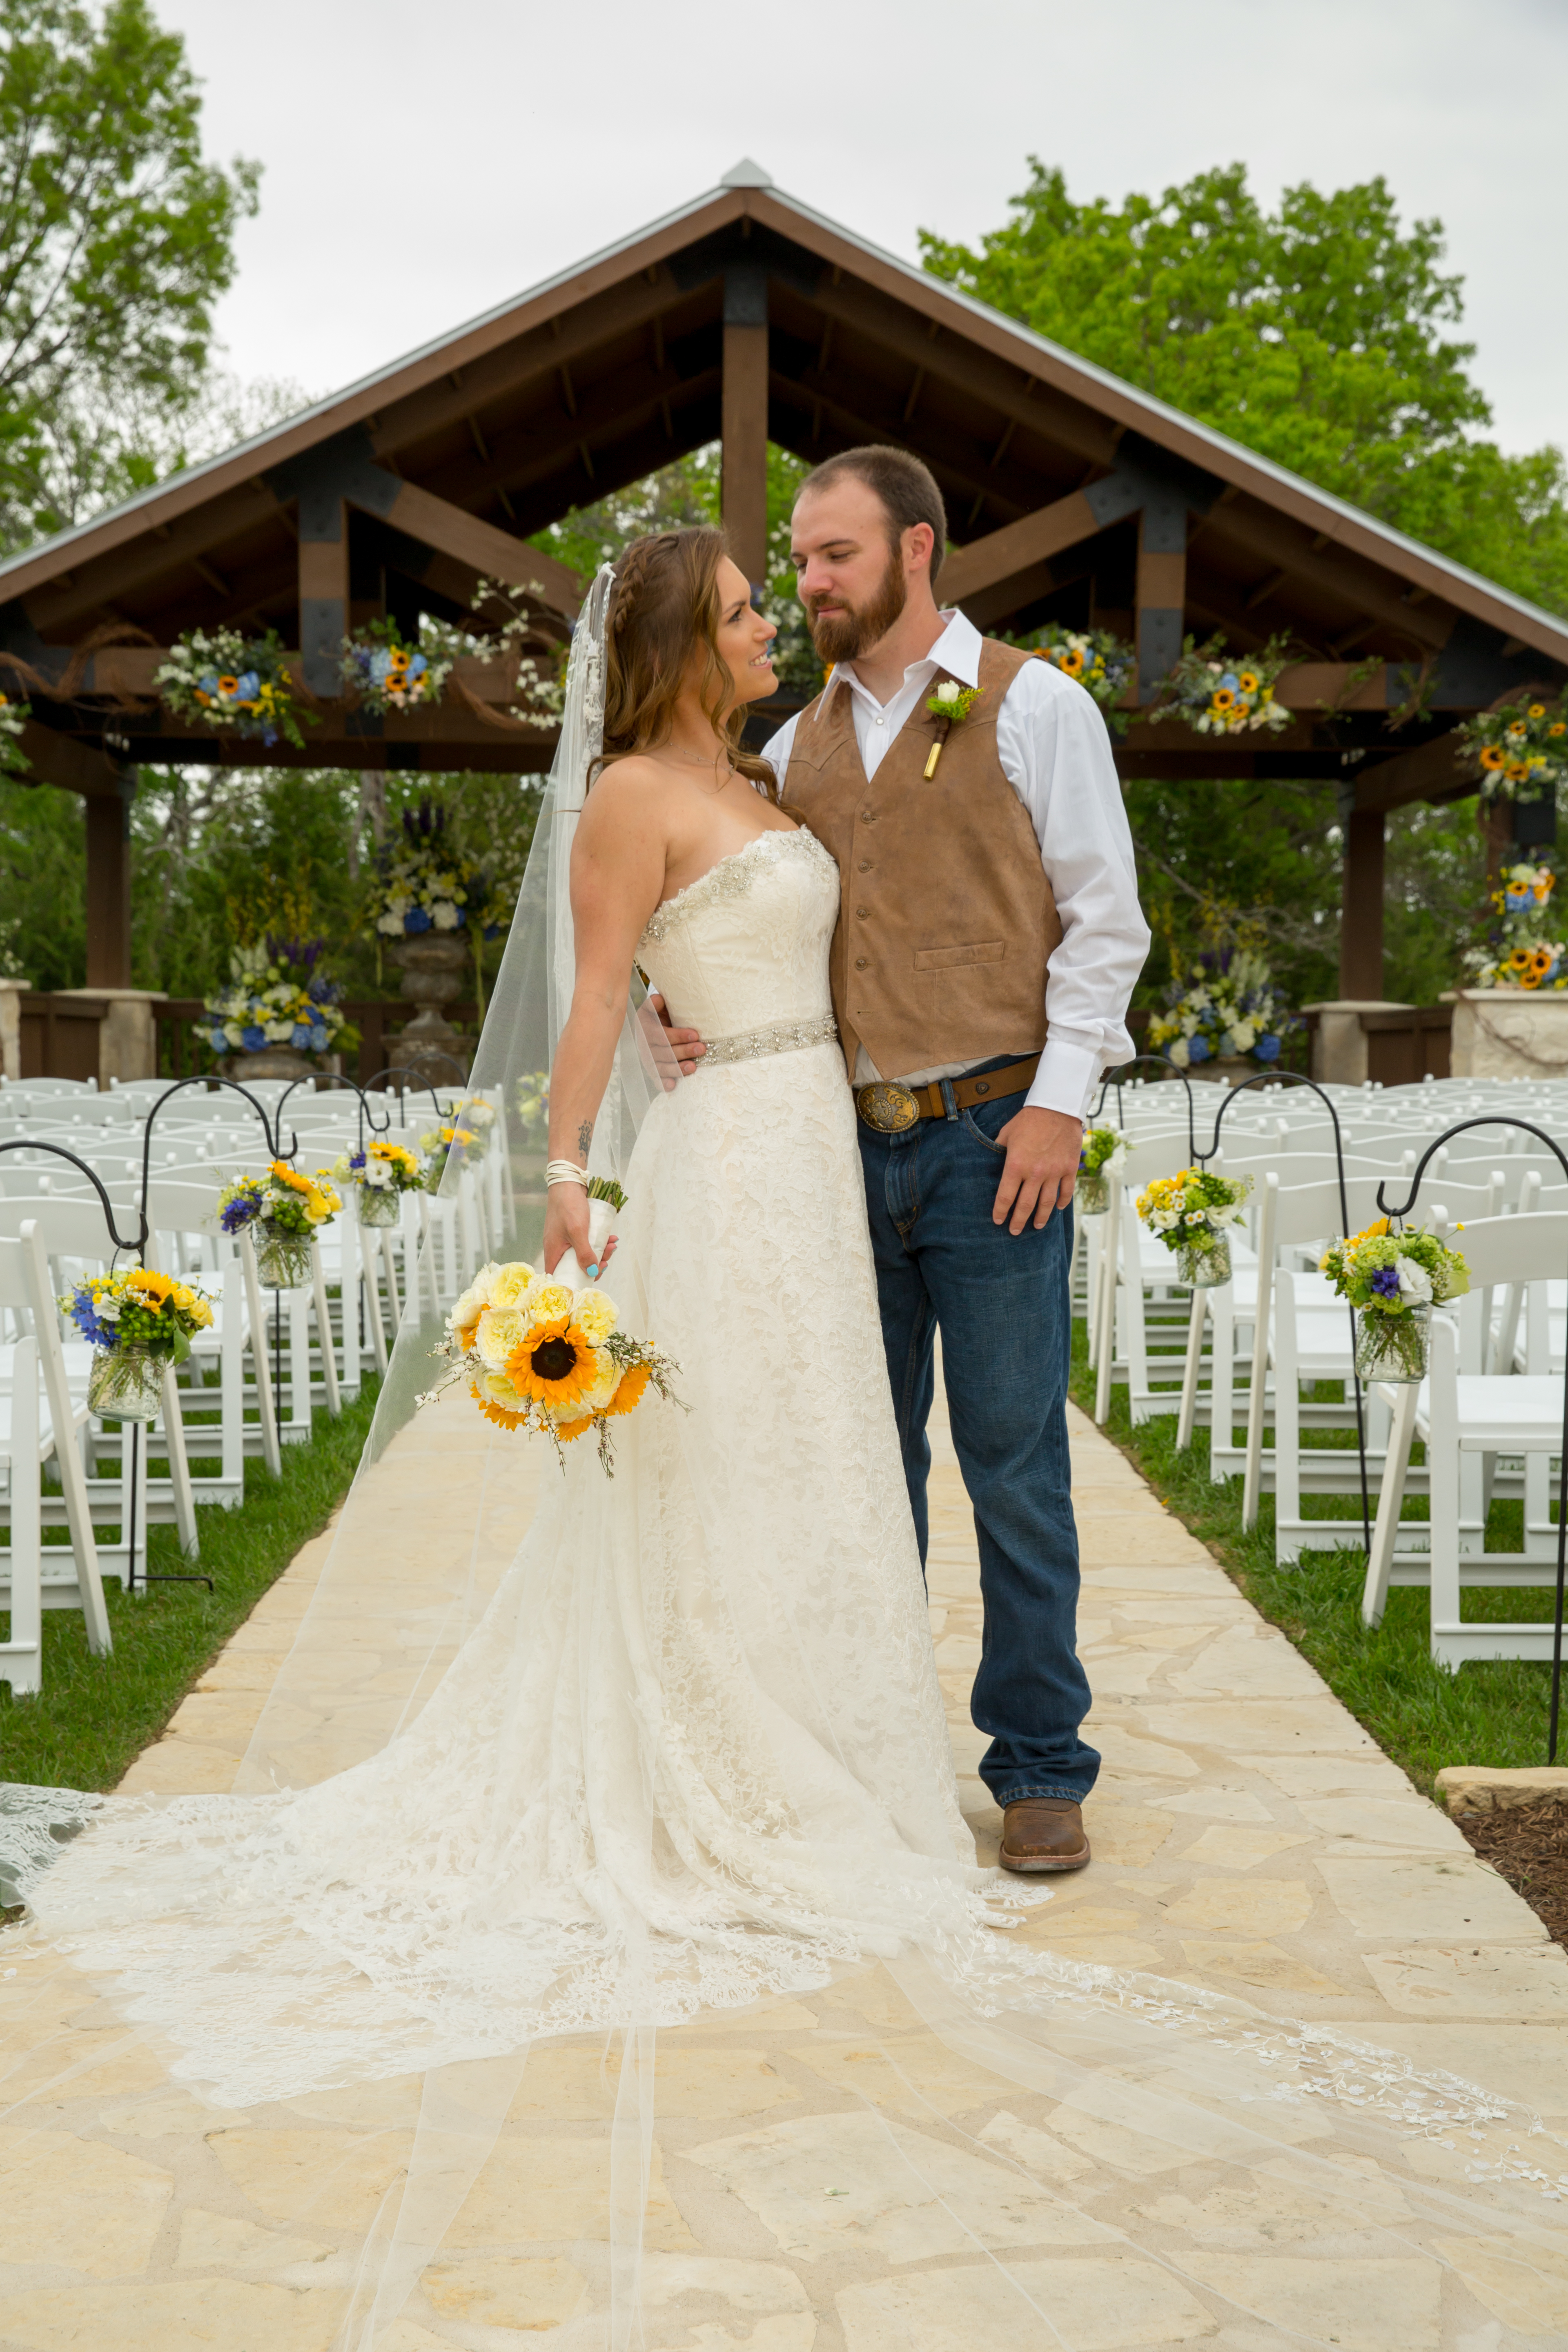 A Simple Country Wedding Deep in the Heart of Texas - Sue Kelson Events